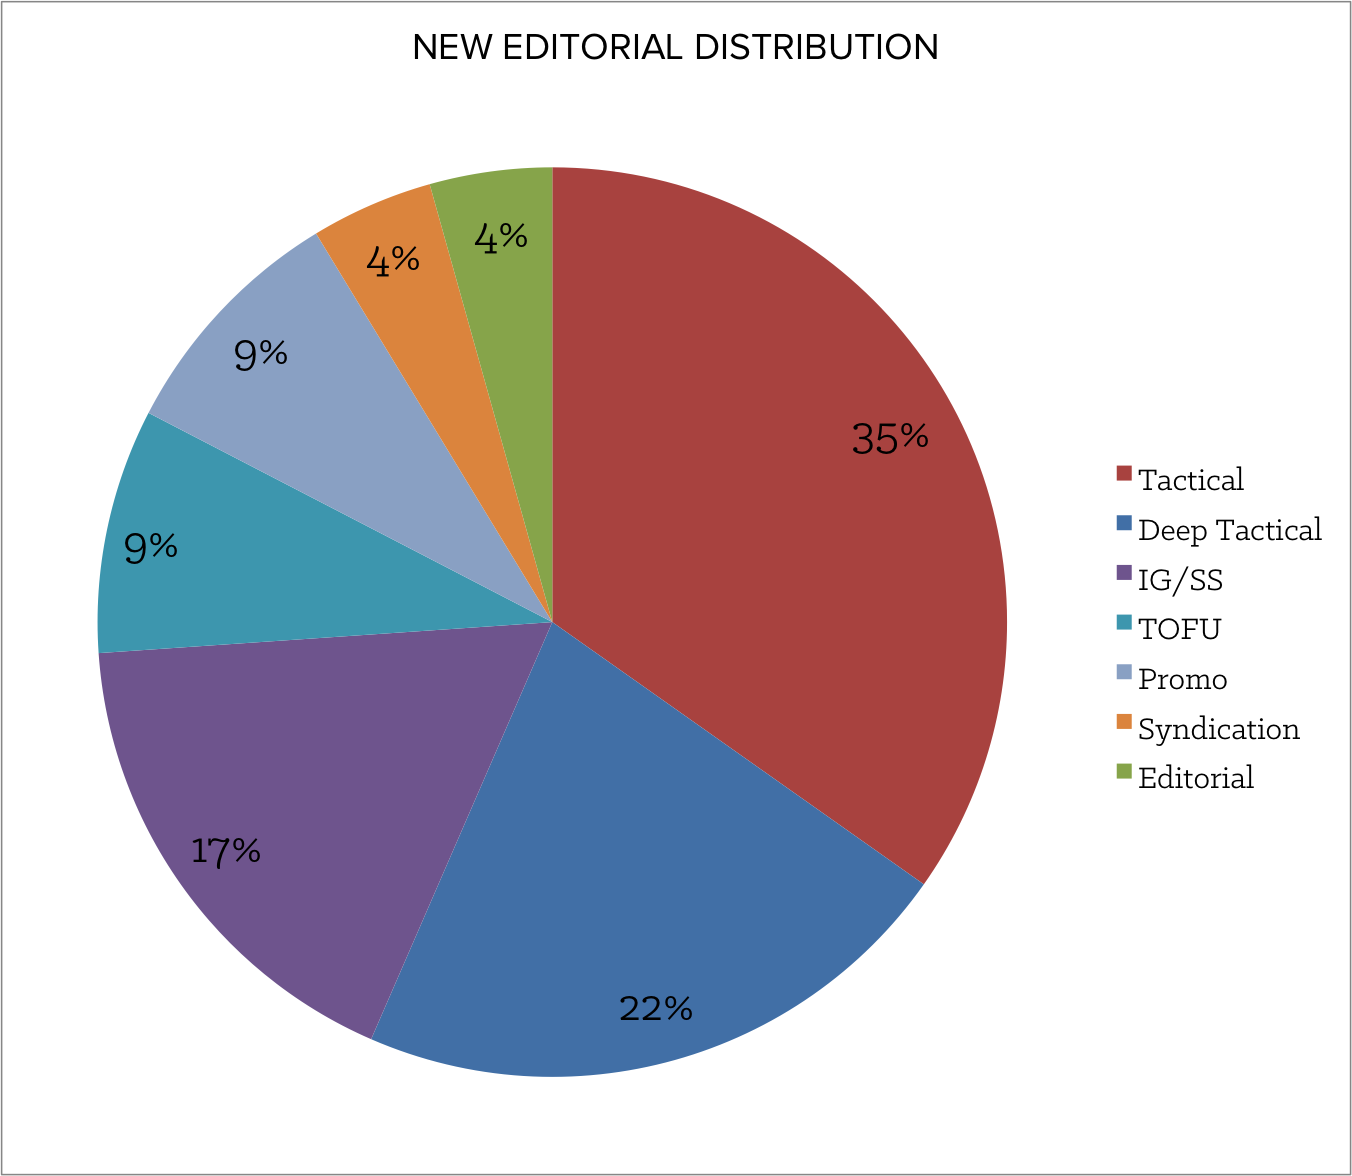 new_editorial_distribution.png